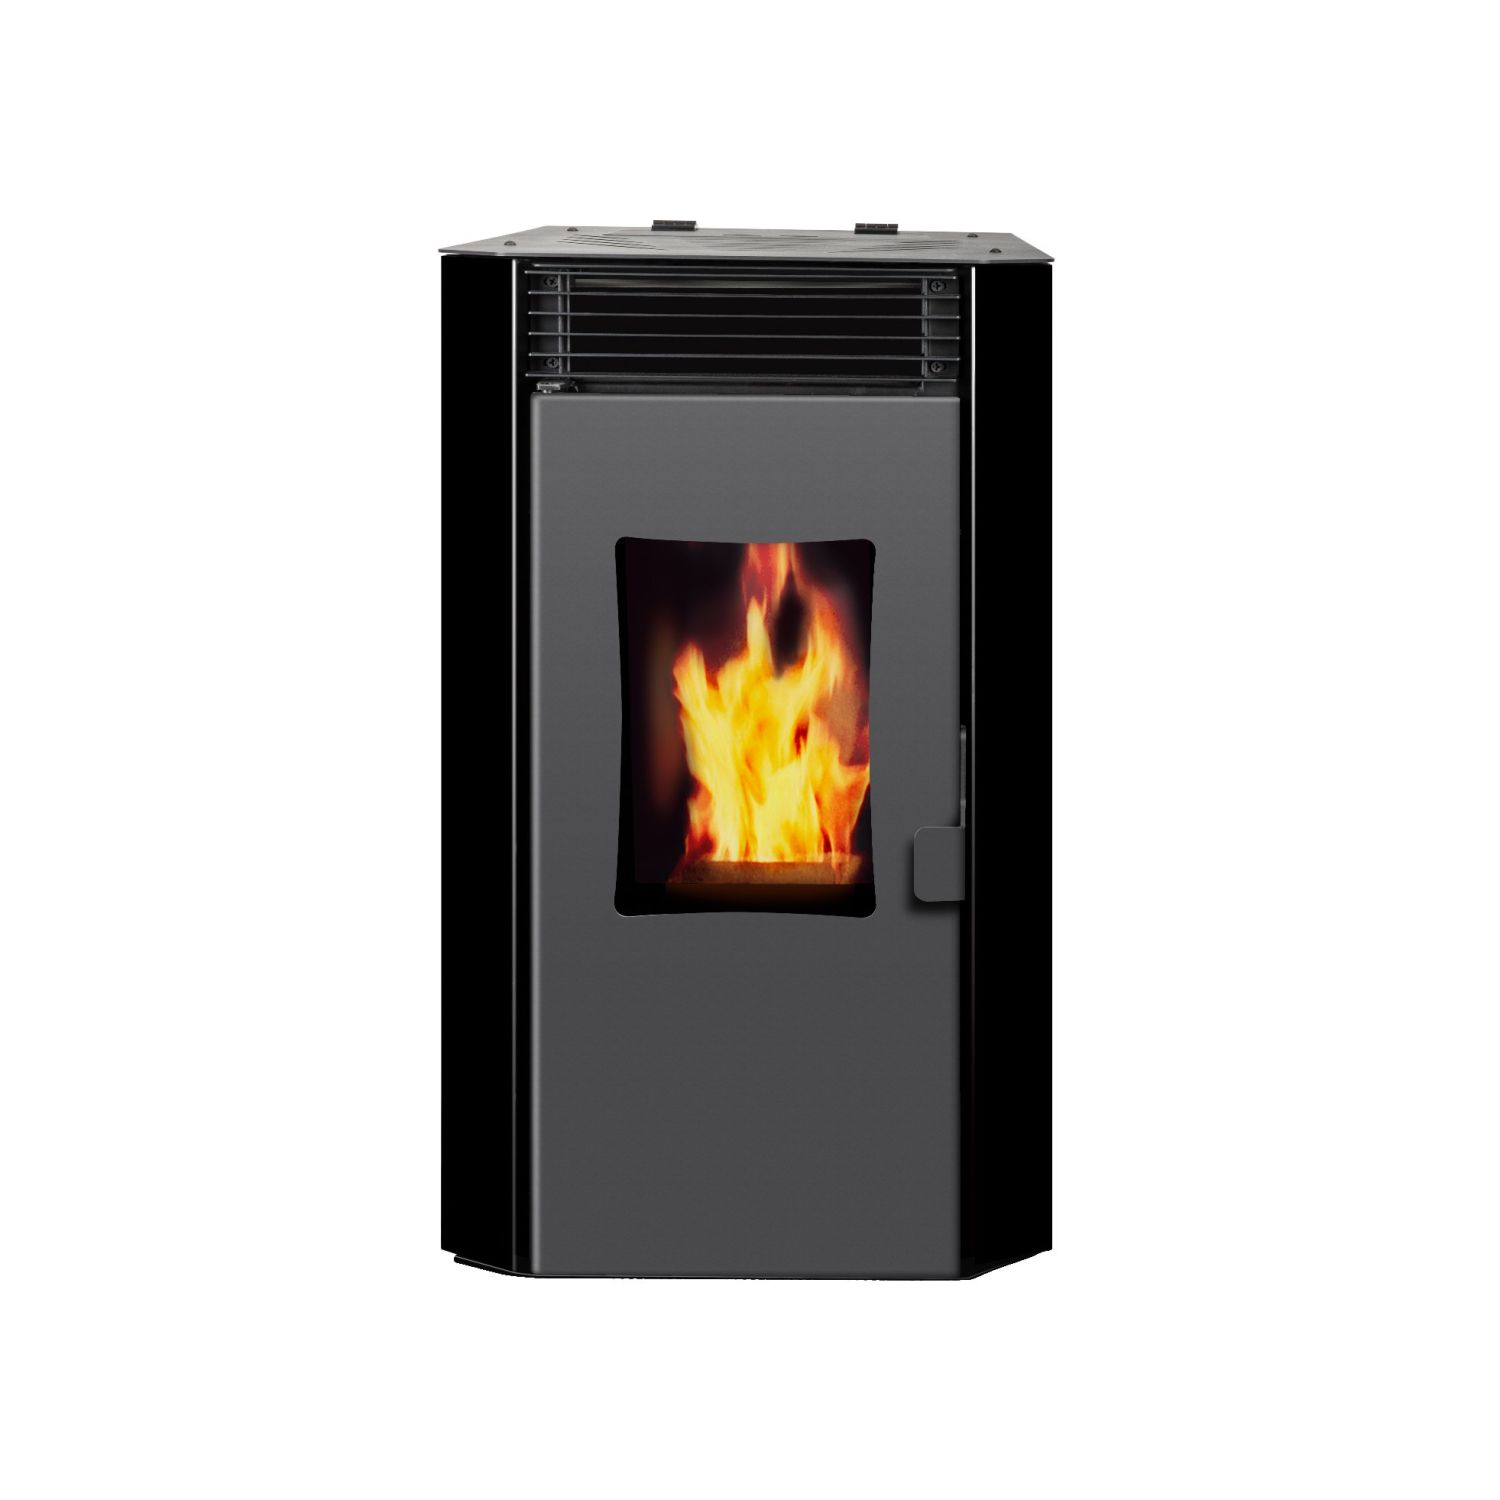 China Pellet Stove Manufacturer Pellet Burning Stove Pellet Heater Supplier Jinhua Adorefires Stove Co Ltd